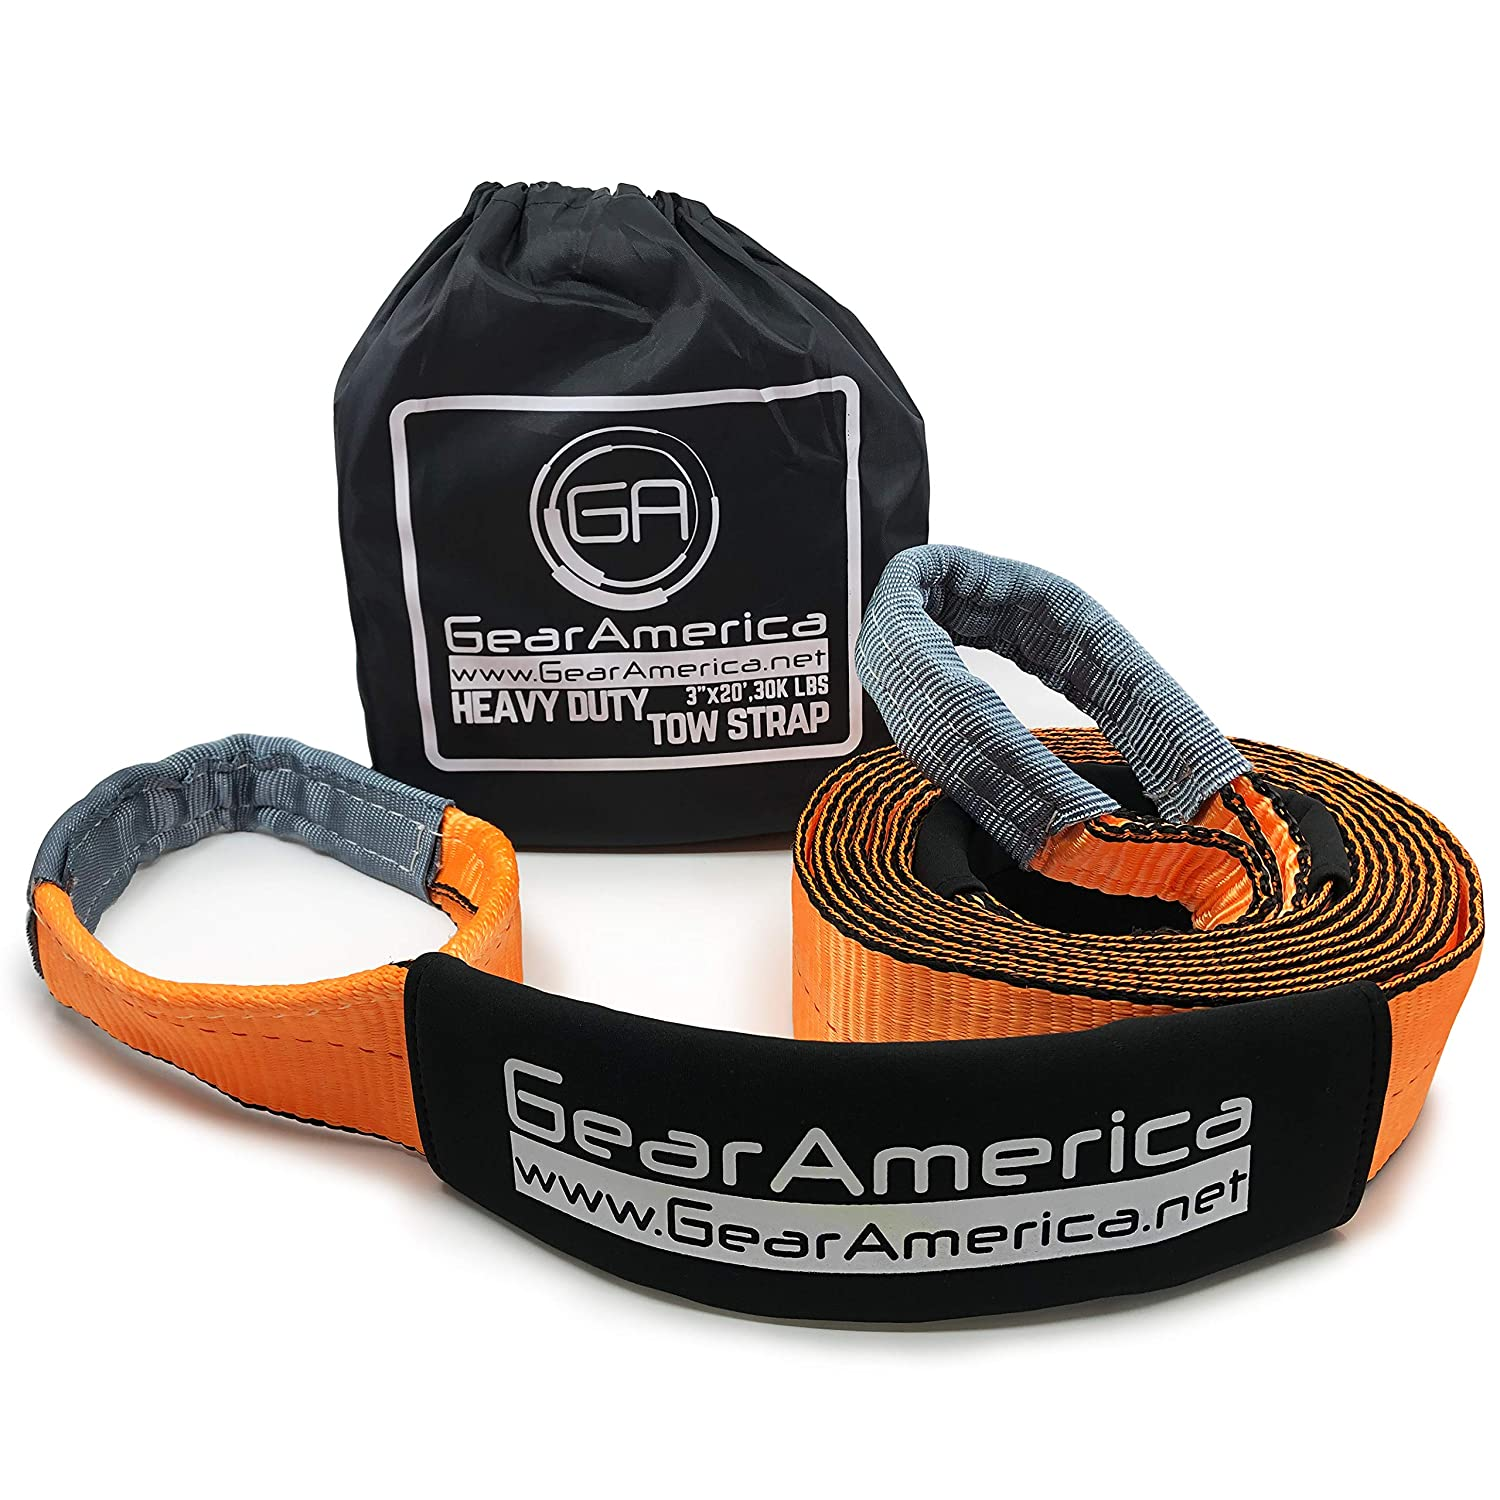 Strength 20.7 Tons Recovery Tow Strap 4 x 30 Free Storage Bag Emergency Truck Towing Adjustable Protective Sleeves 2PK Strap Triple Reinforced Loops Heavy Duty Lab Tested 41,455 lbs